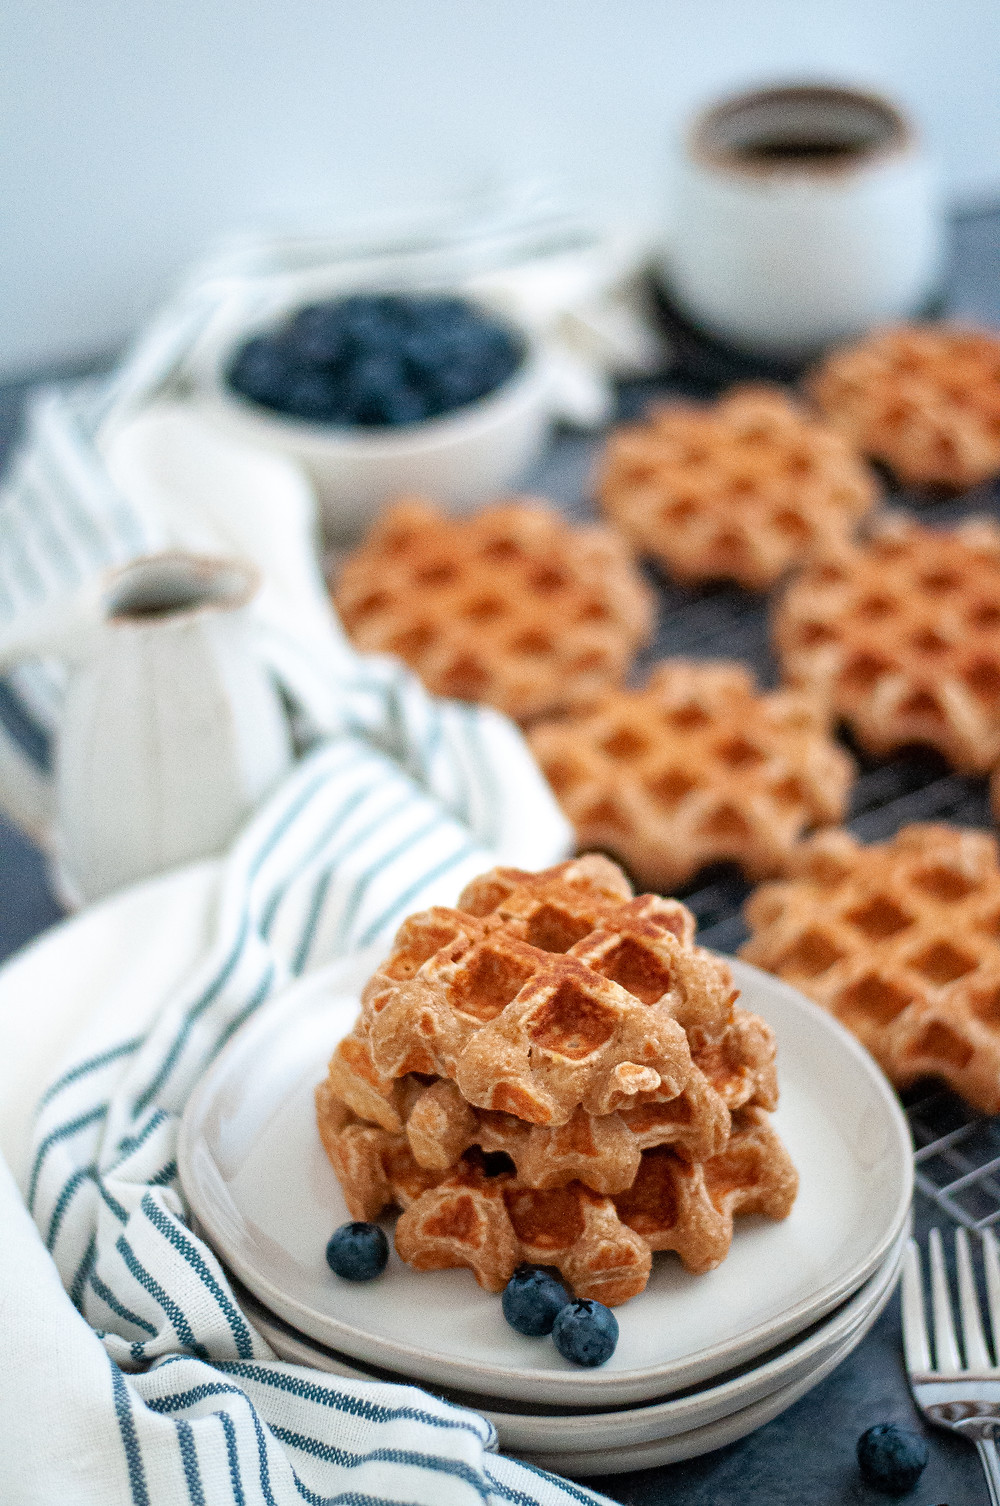 A stack of homemade waffles on a plate with additional whole wheat waffles on a cooling rack in the background